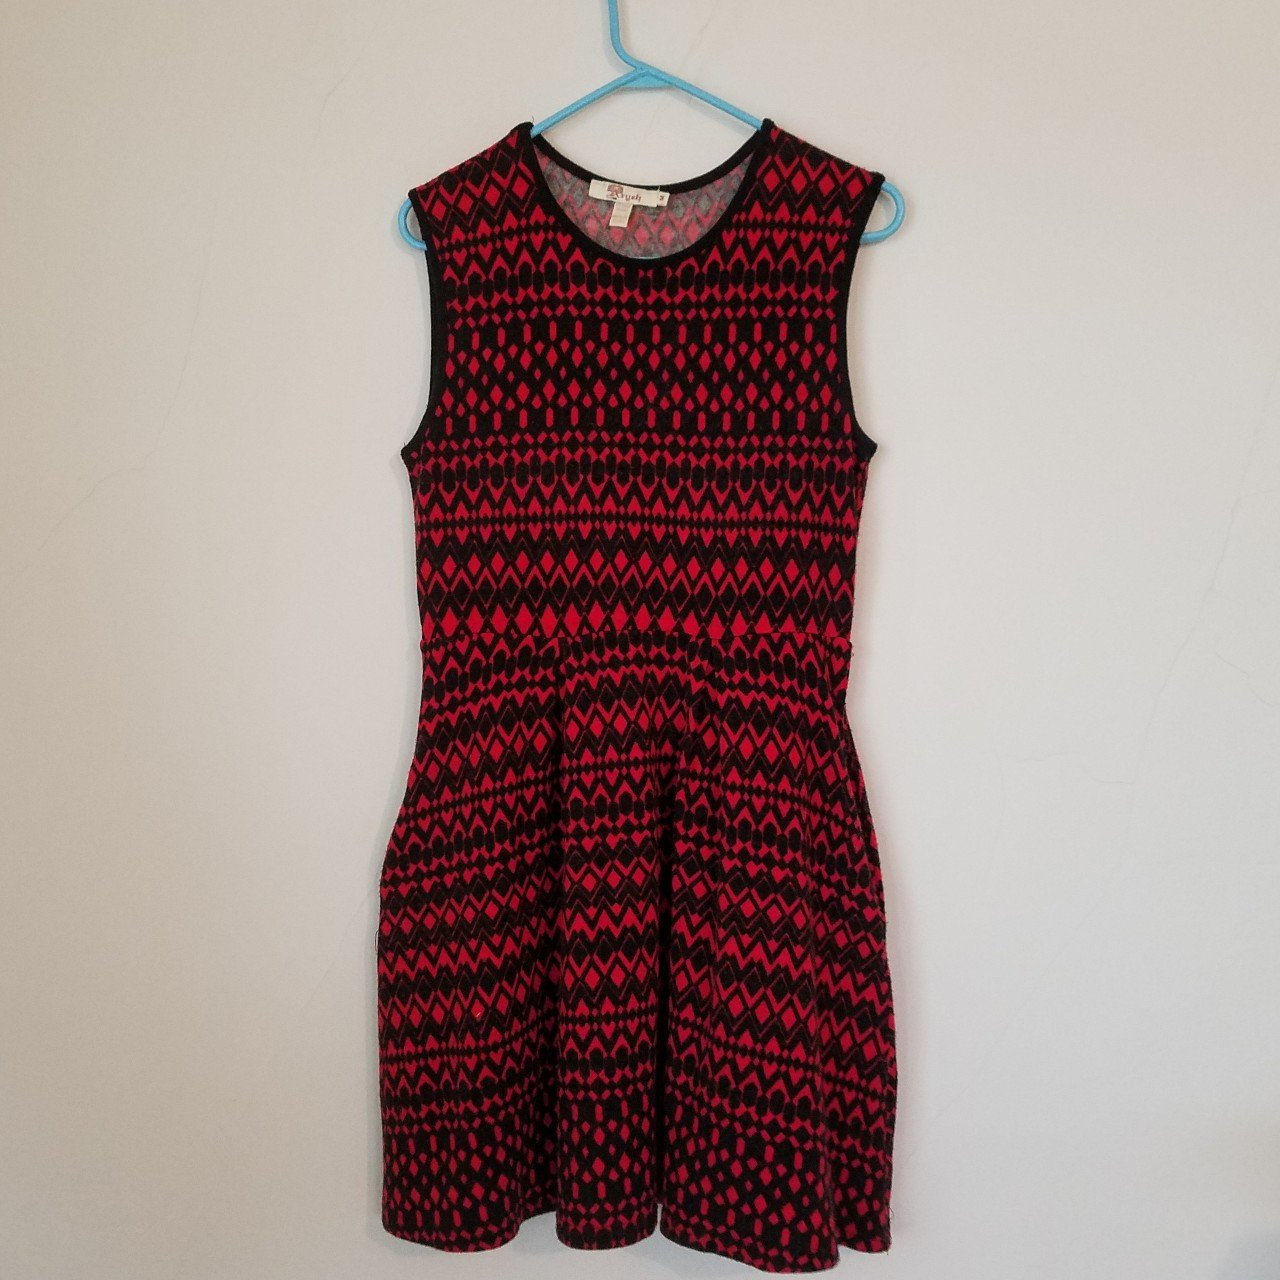 69cbcb1b8716d Aryeh Anthropologie Print Dress. Knee length Fit & Flare Red - Depop